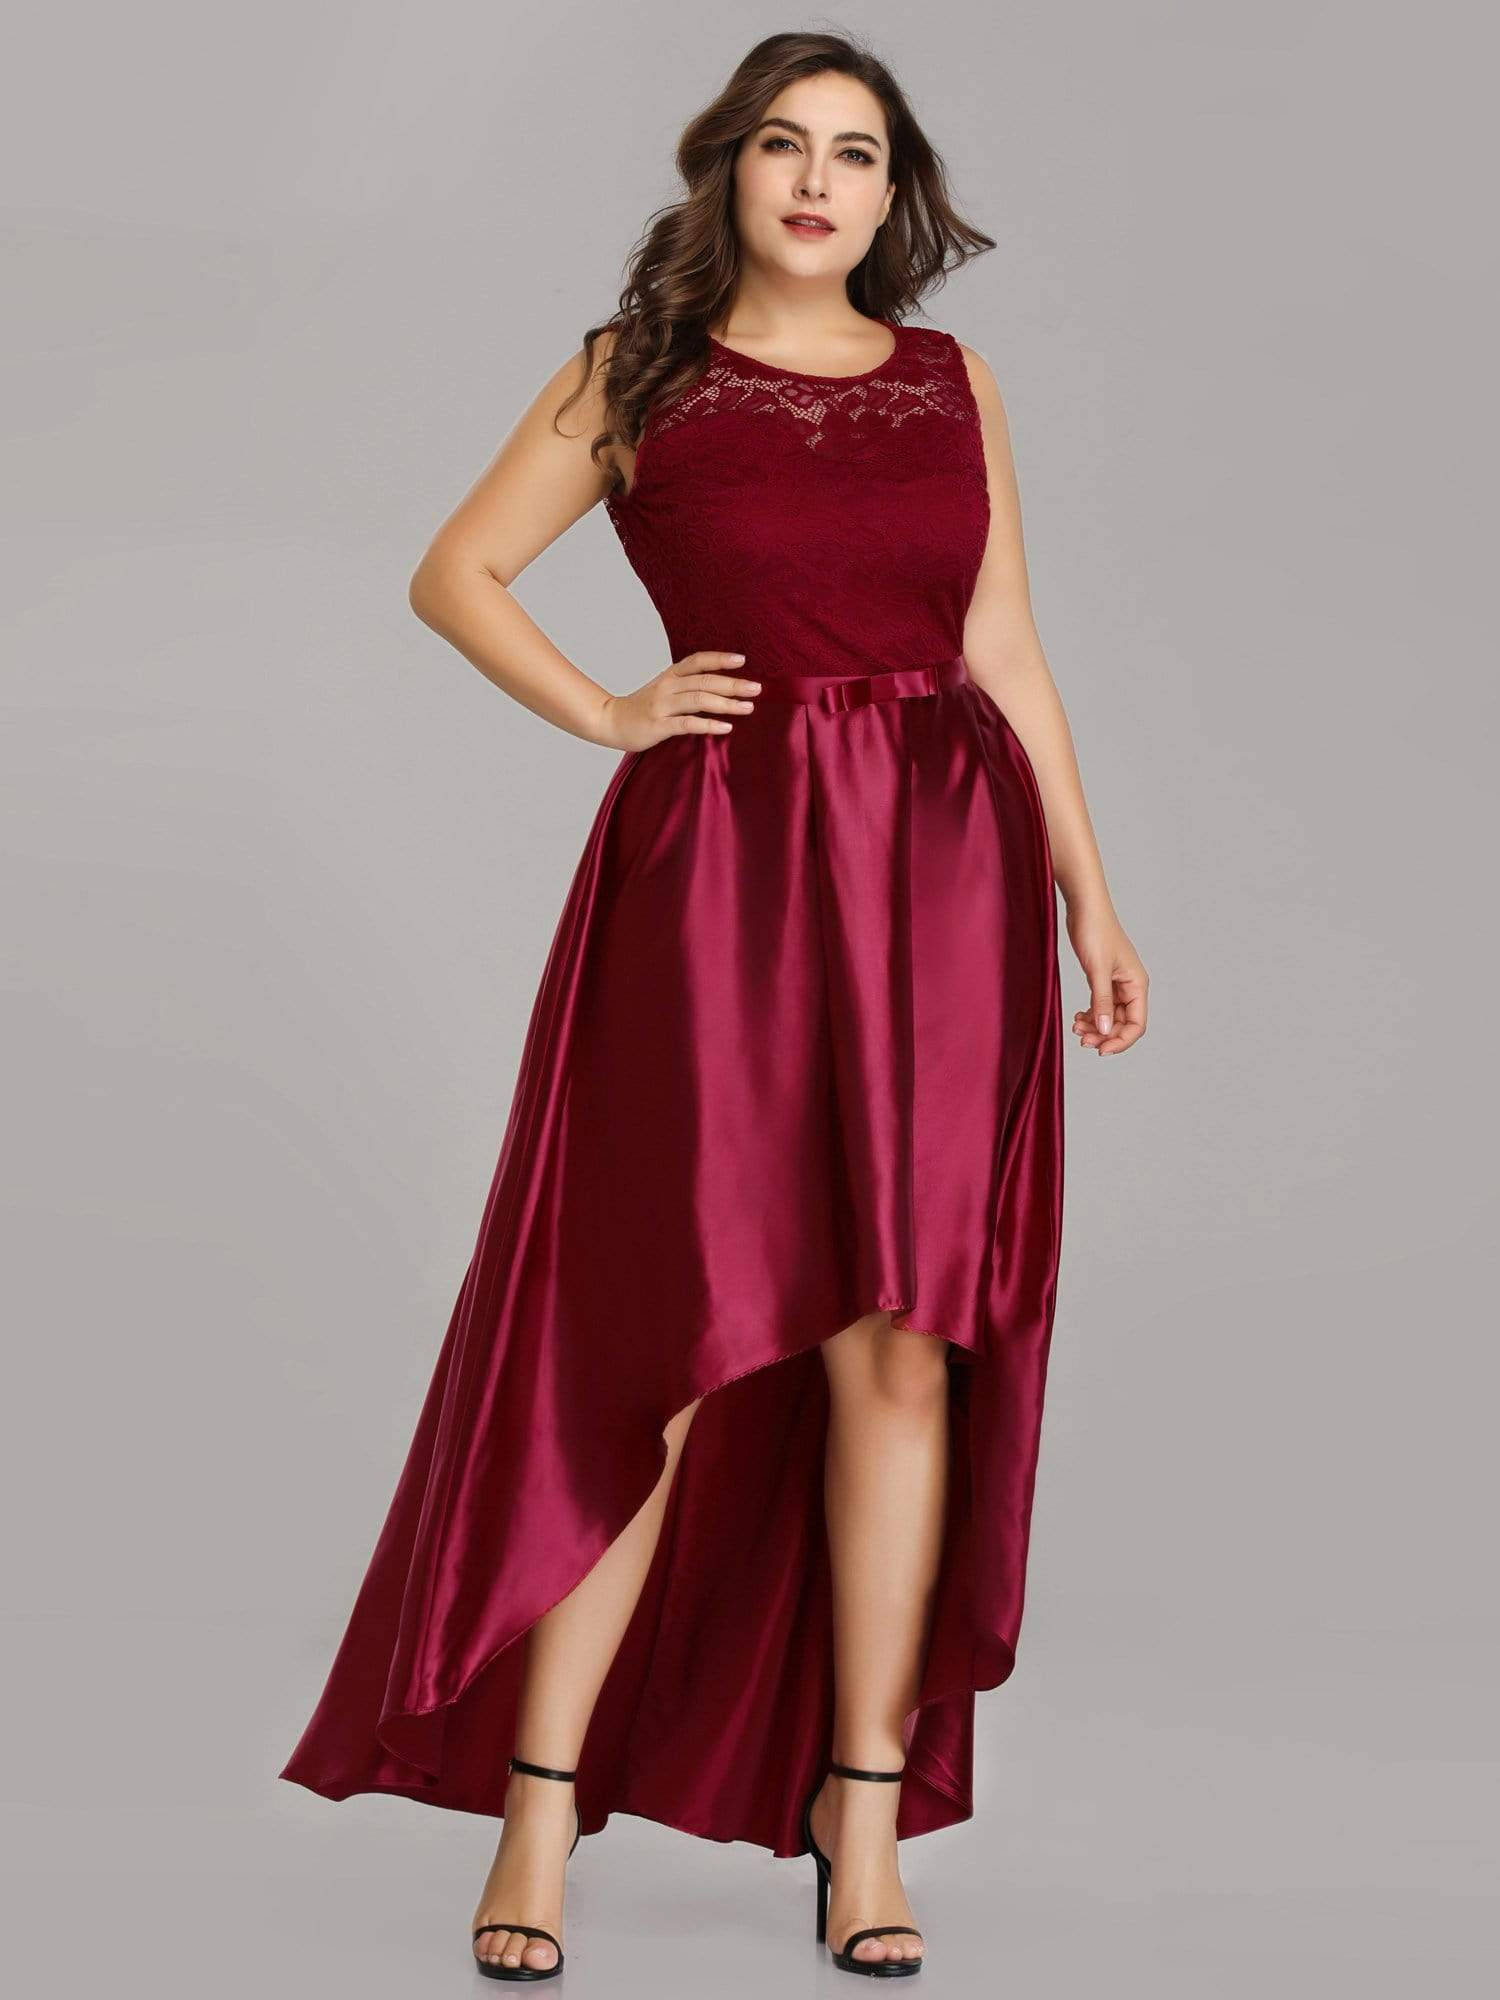 91b10b9d1a Plus Size High Low Lace & Satin Party Dress|Ever-Pretty - Ever Pretty AU